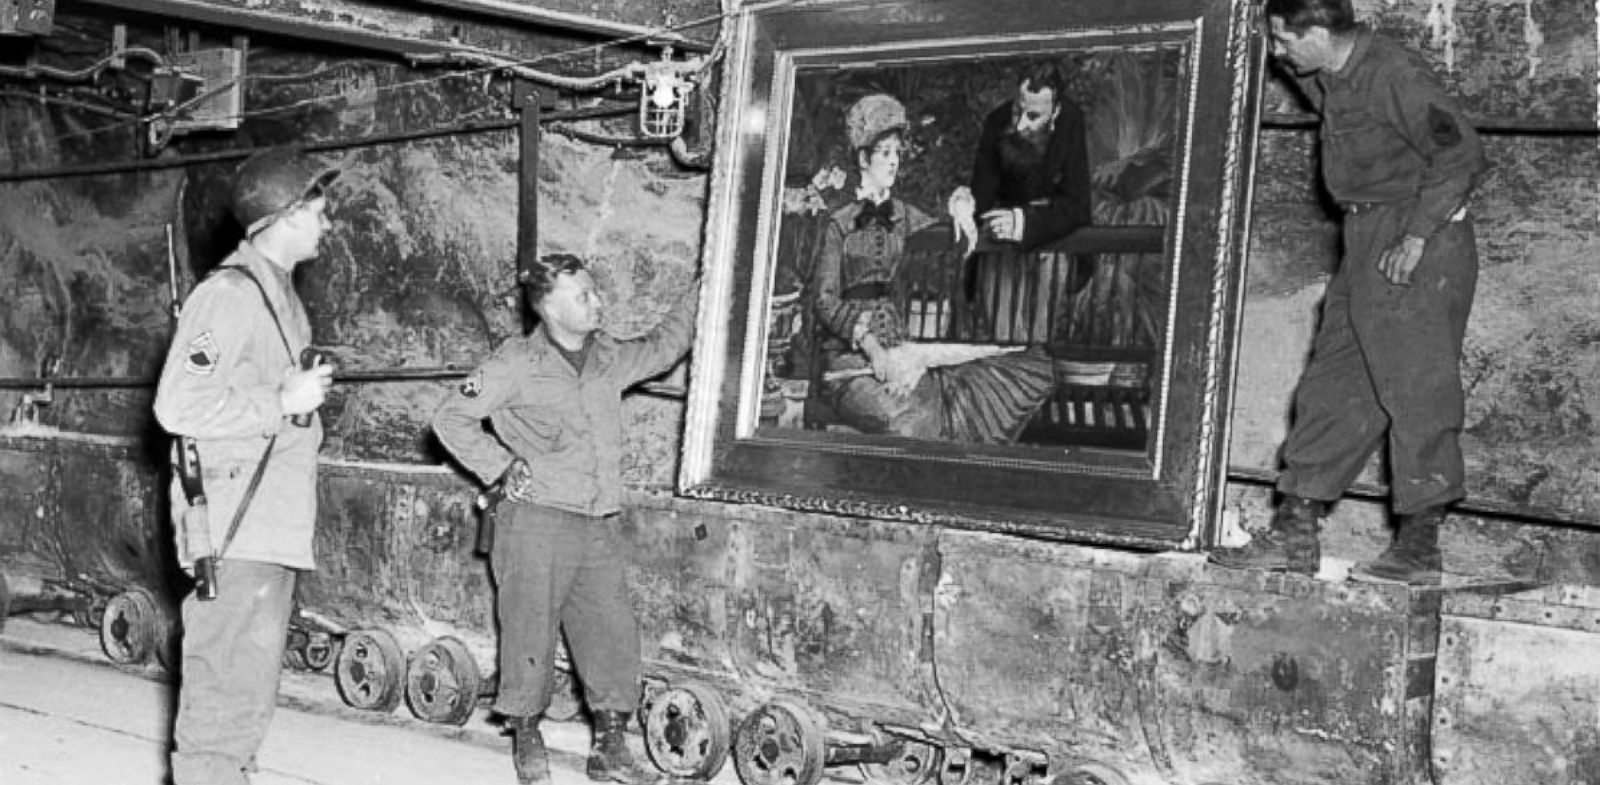 "PHOTO: In this April 25, 1945 image released by the U.S. National Archives, U.S. Army personnel stand by a painting called, ""Wintergarden,"" by French impressionist Edouard Manet, which was discovered in the vault in Merkers, Germany."